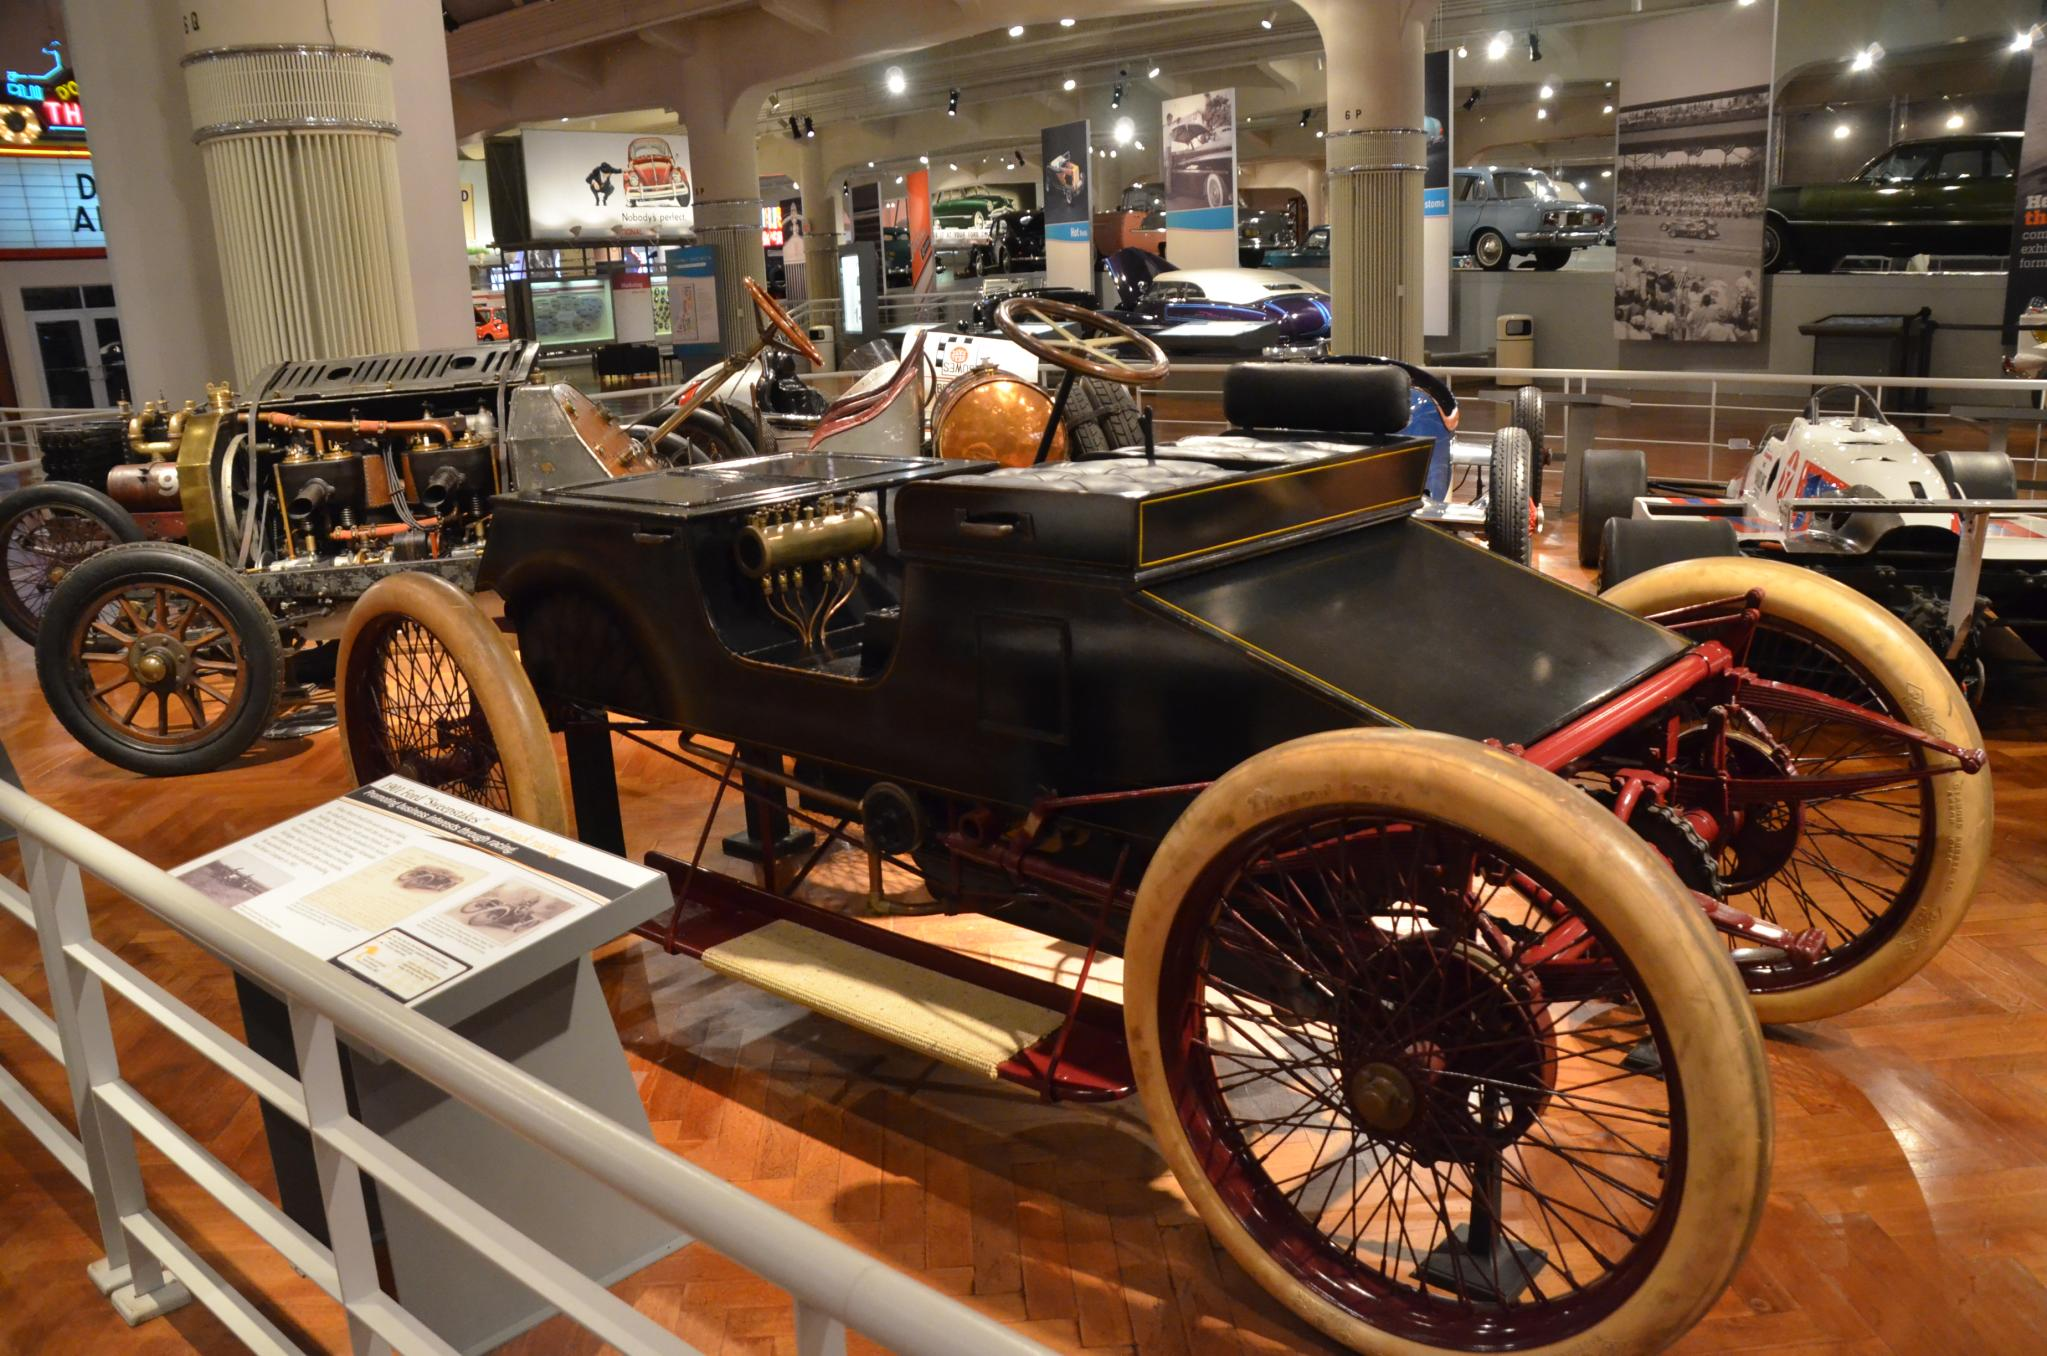 File:1901 Ford Sweepstakes race car - The Henry Ford